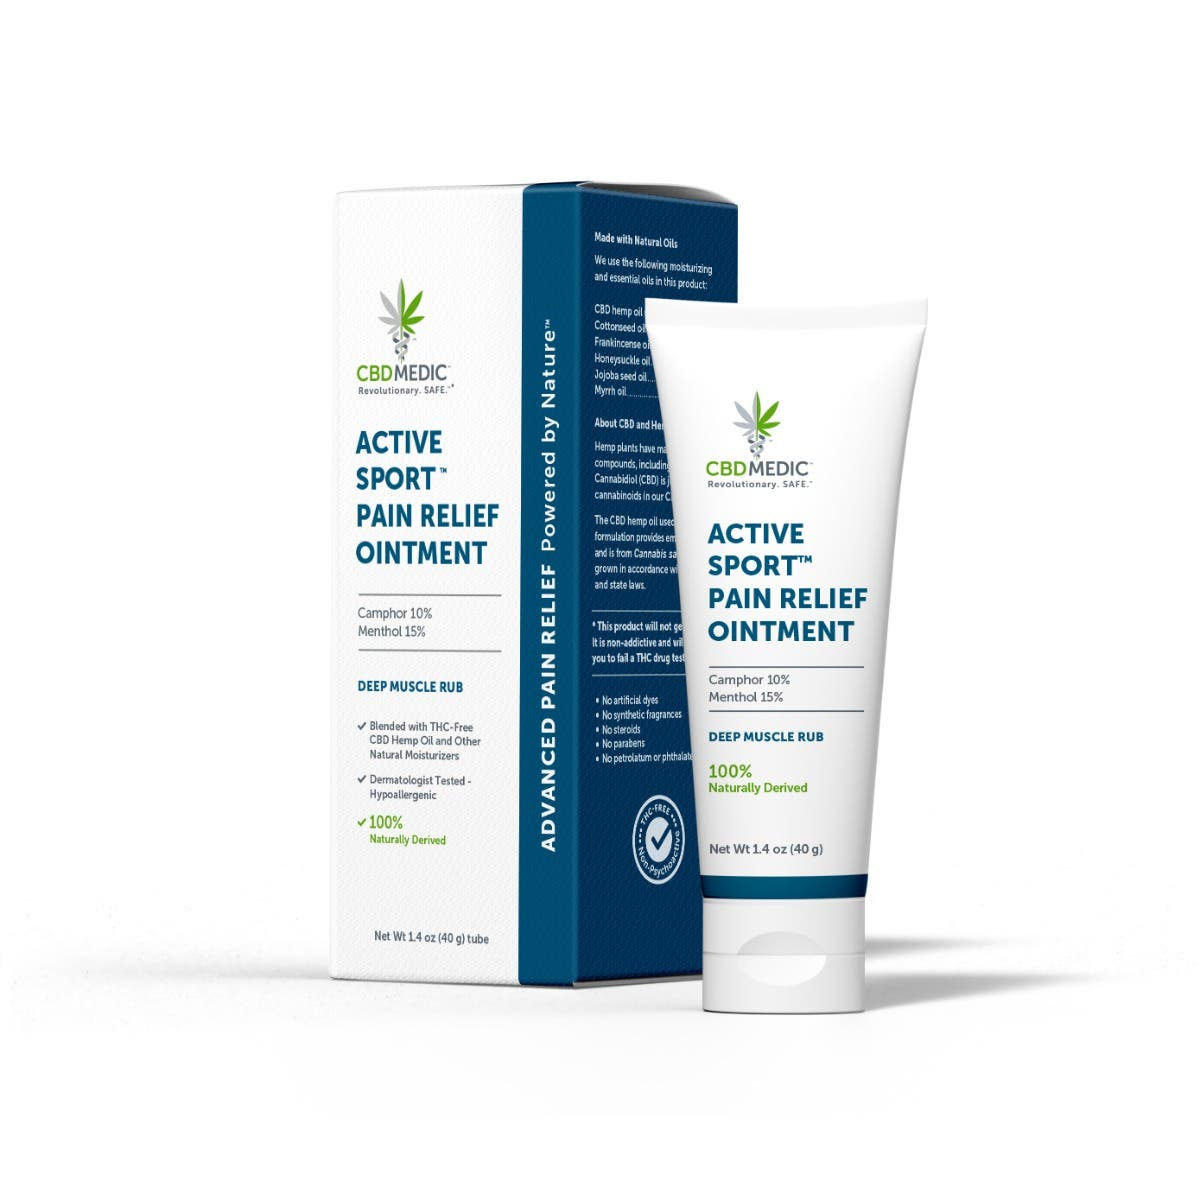 ACTIVE SPORT™ PAIN RELIEF OINTMENT